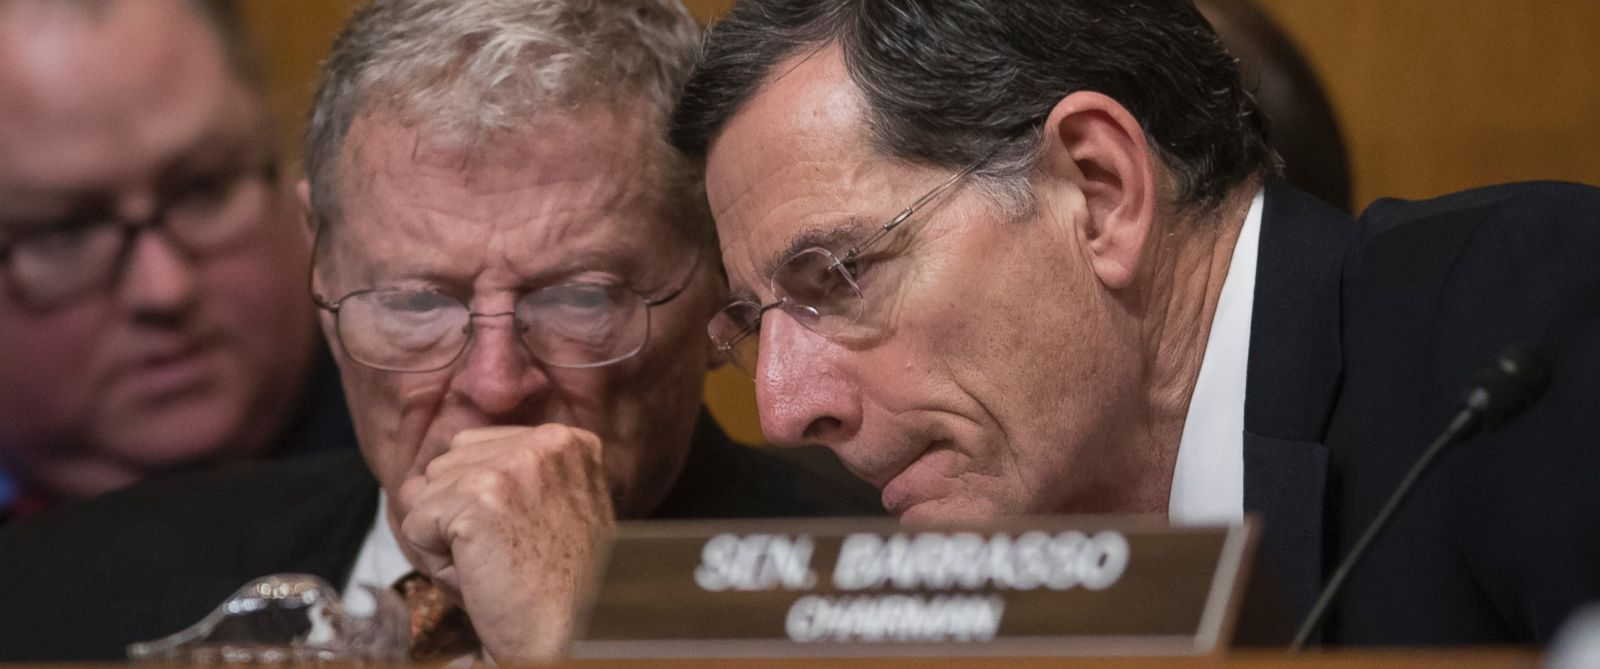 PHOTO: Senate Environment and Public Works Committee Chairman Sen. John Barrasso, right, confers with Sen. James Inhofe on Capitol Hill in Washington, Jan. 18, 2017.